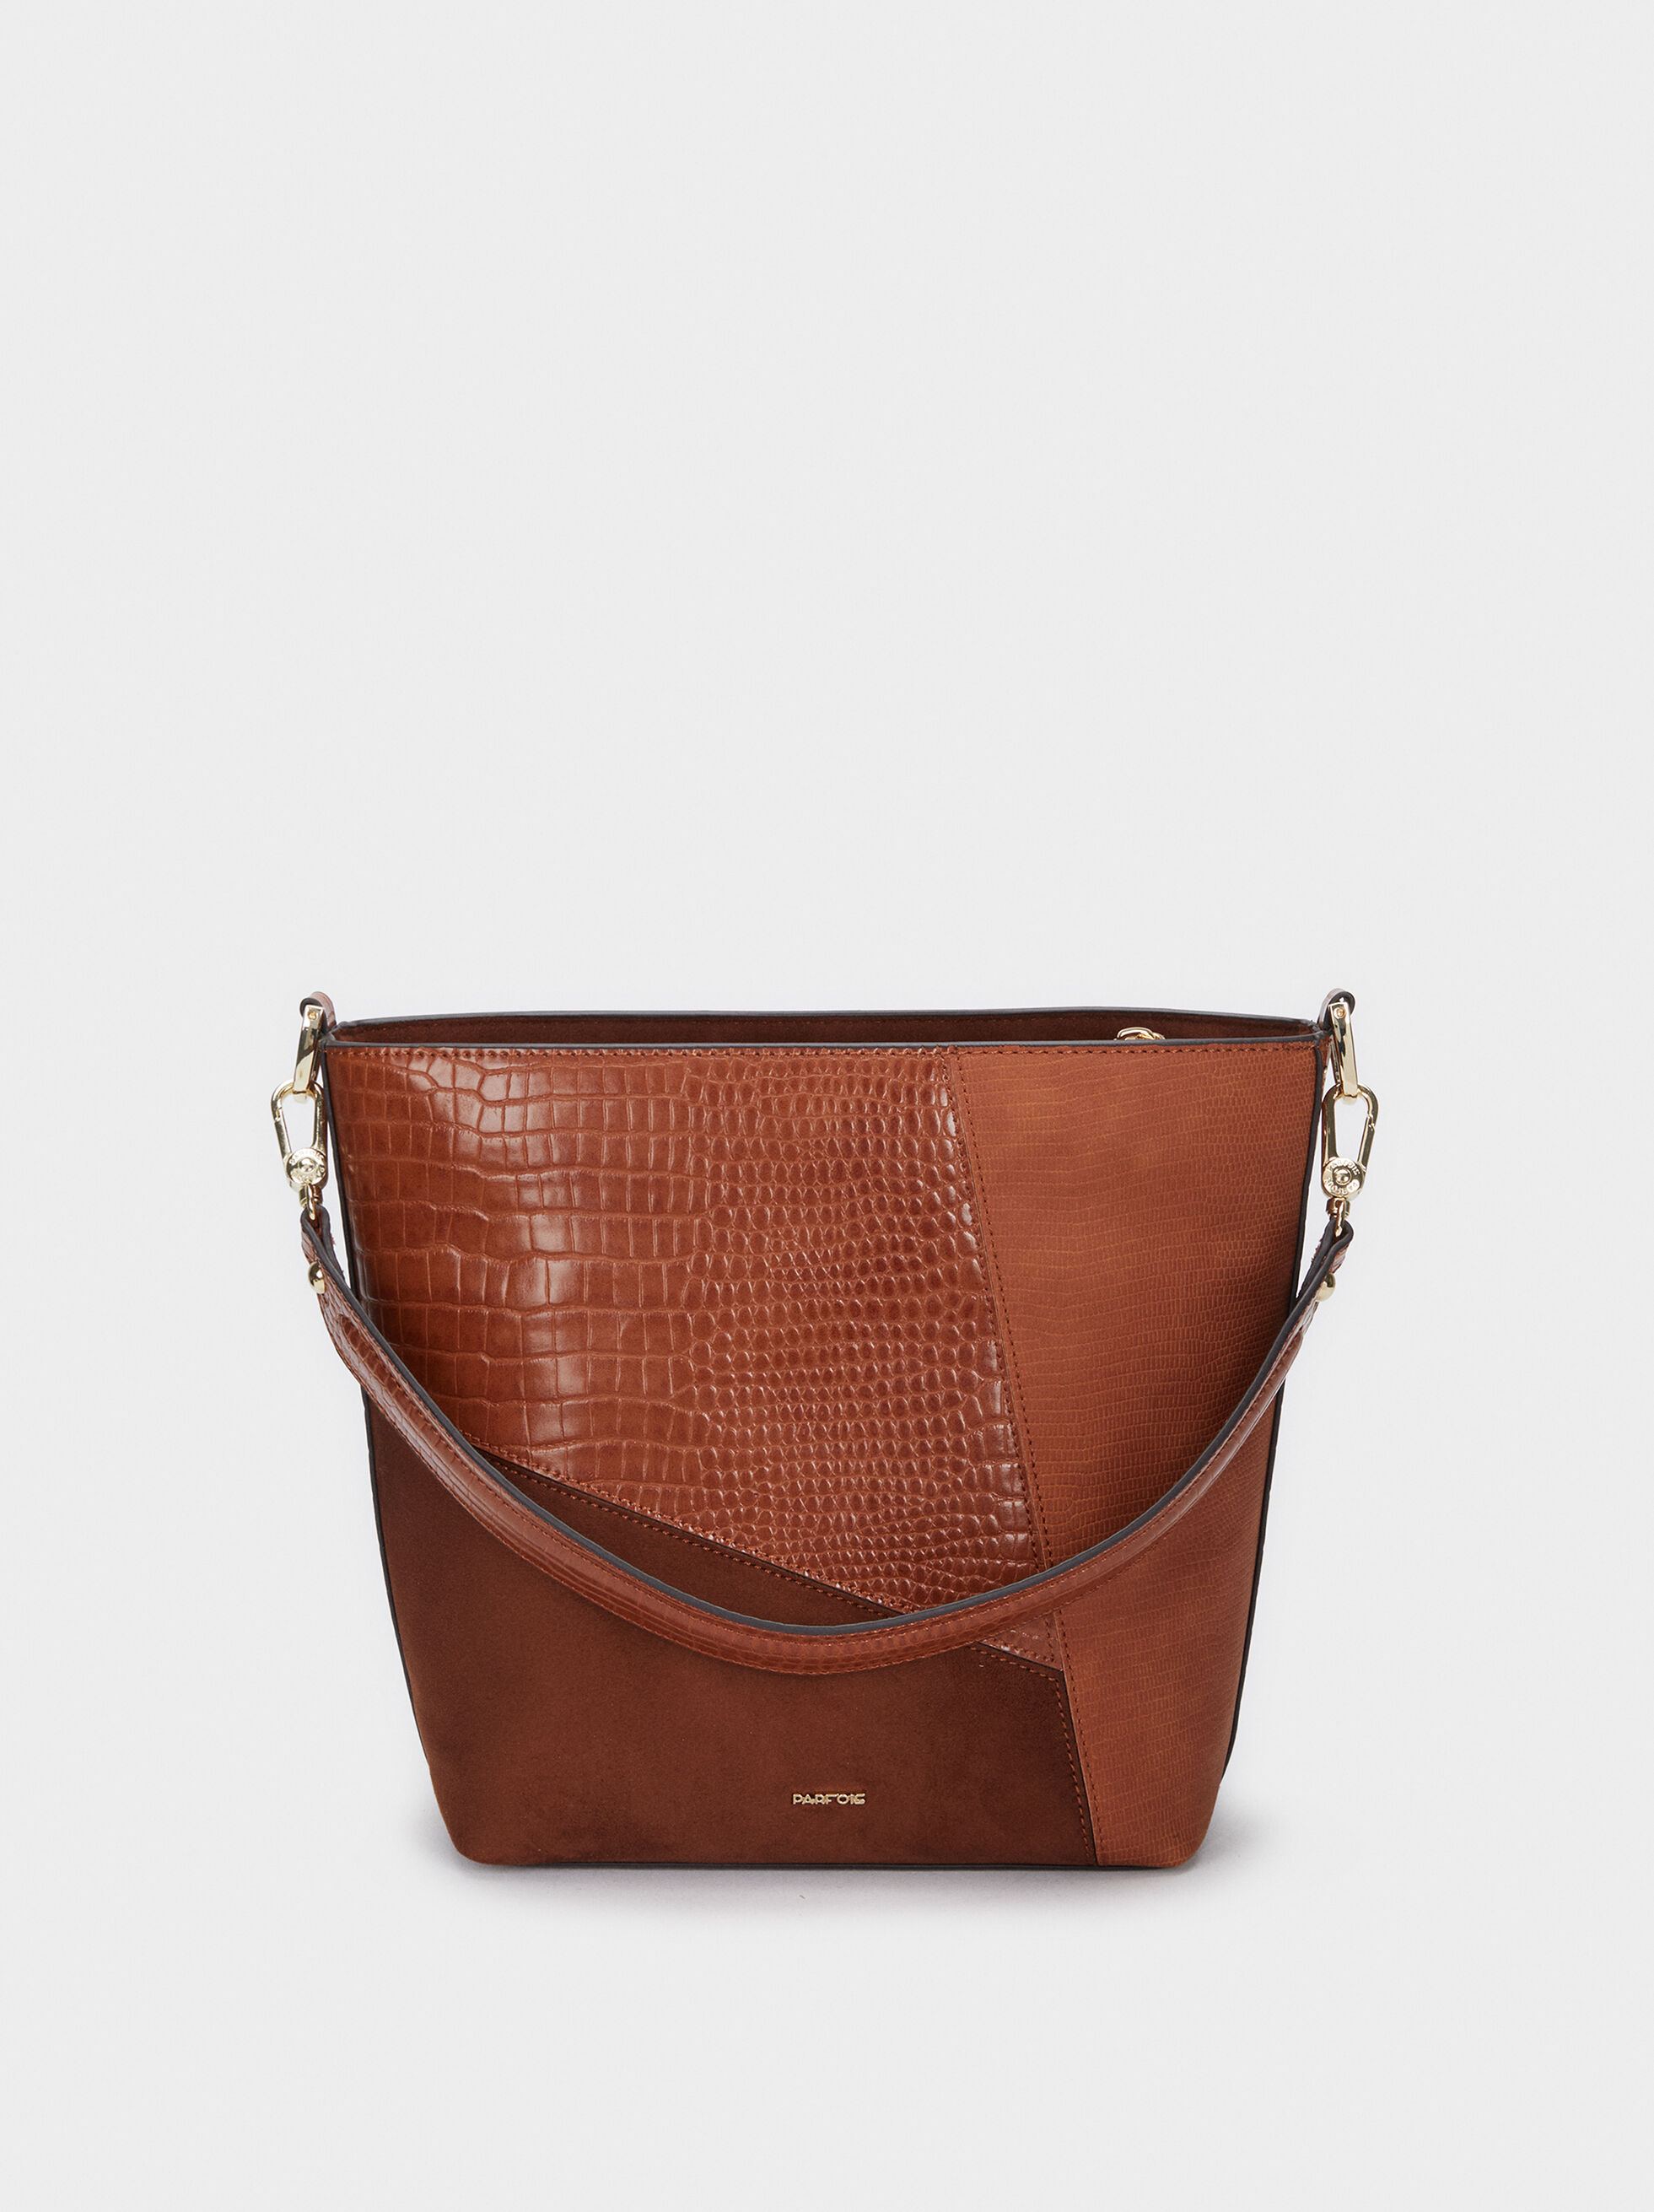 Patchwork Design Shoulder Bag, Camel, hi-res